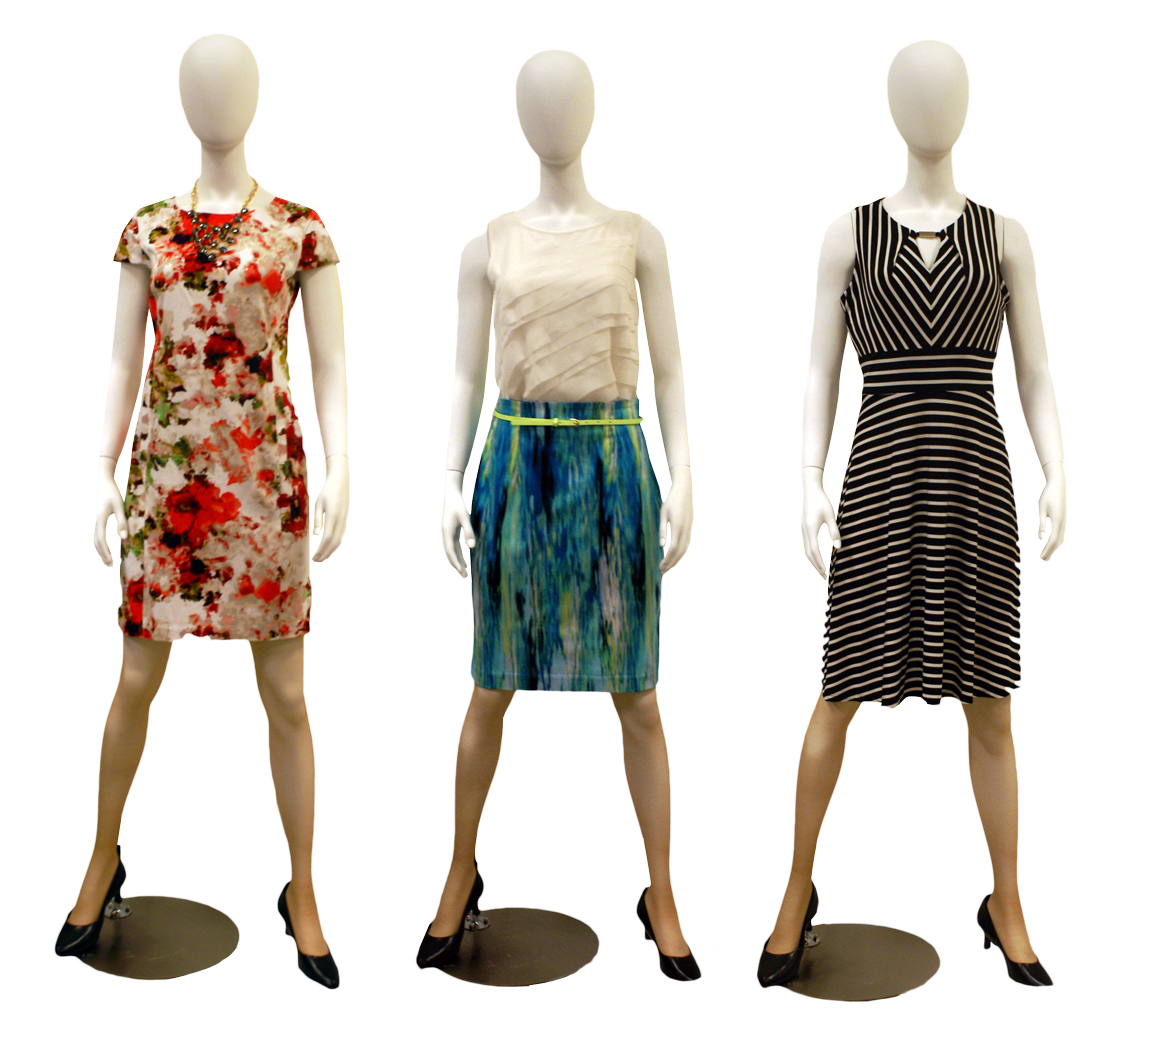 Mannequin with clothes png. Clothing dress fashion casual